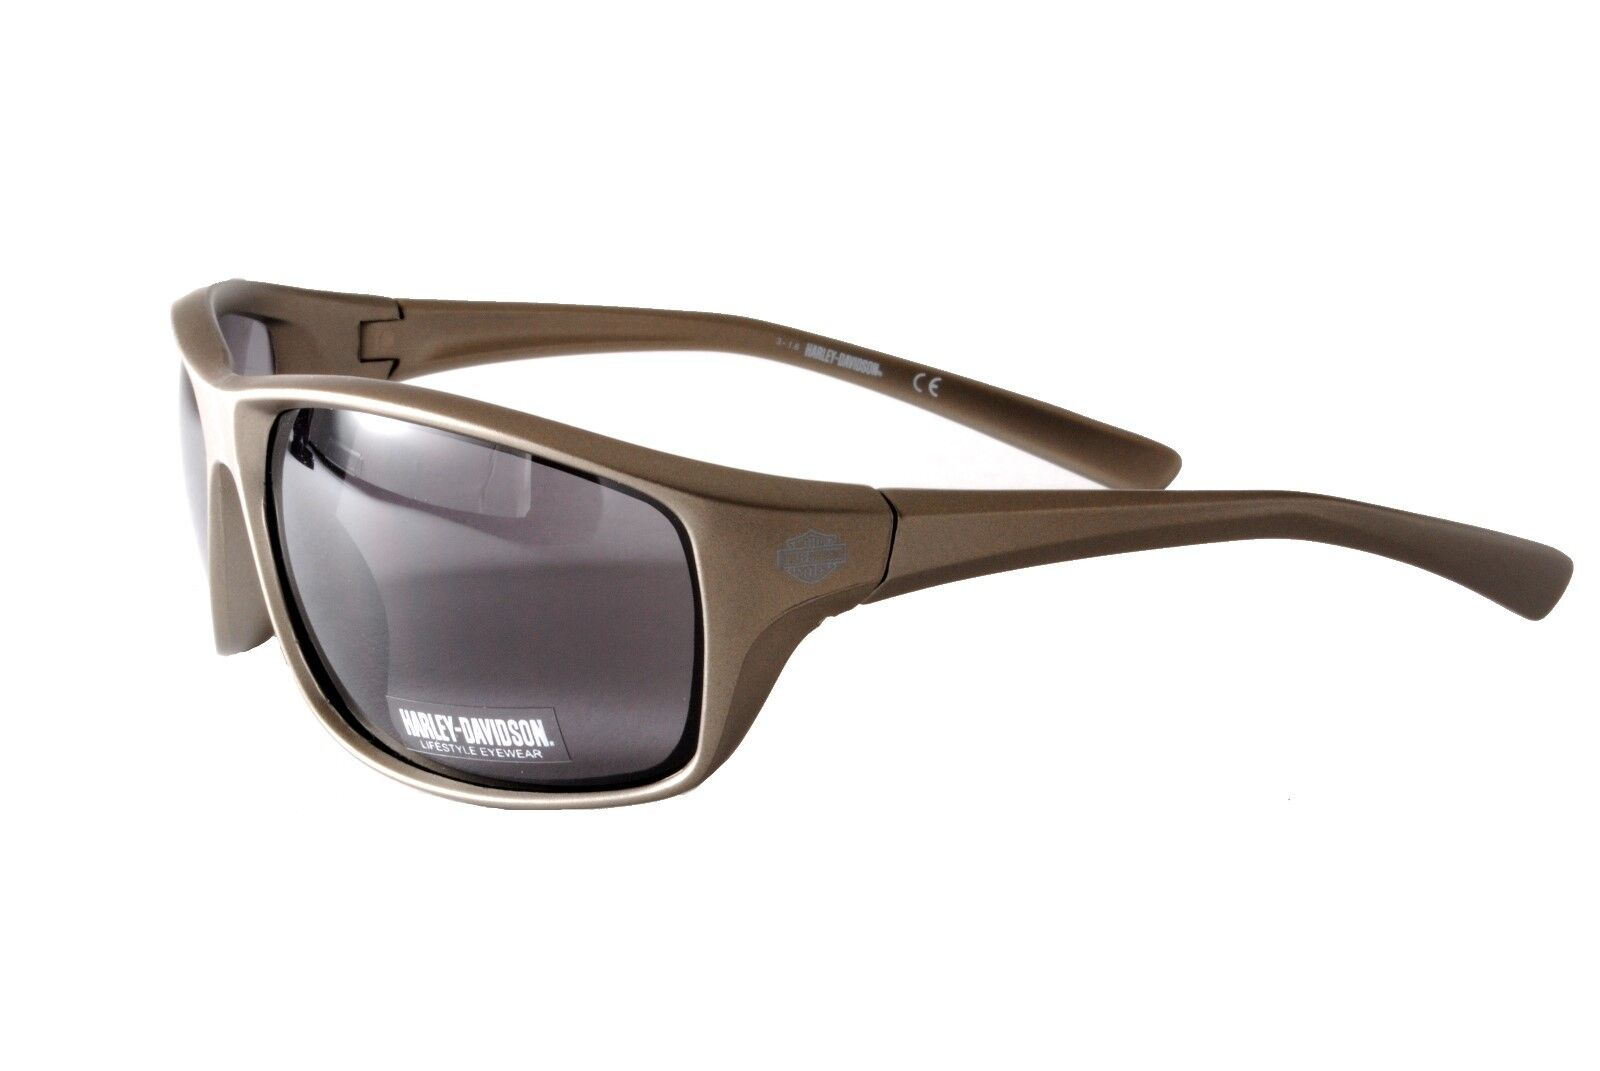 NEW Harley Davidson Men/'s Sunglasses HD642S 11A 63mm Silver Grey AUTHENTIC Metal